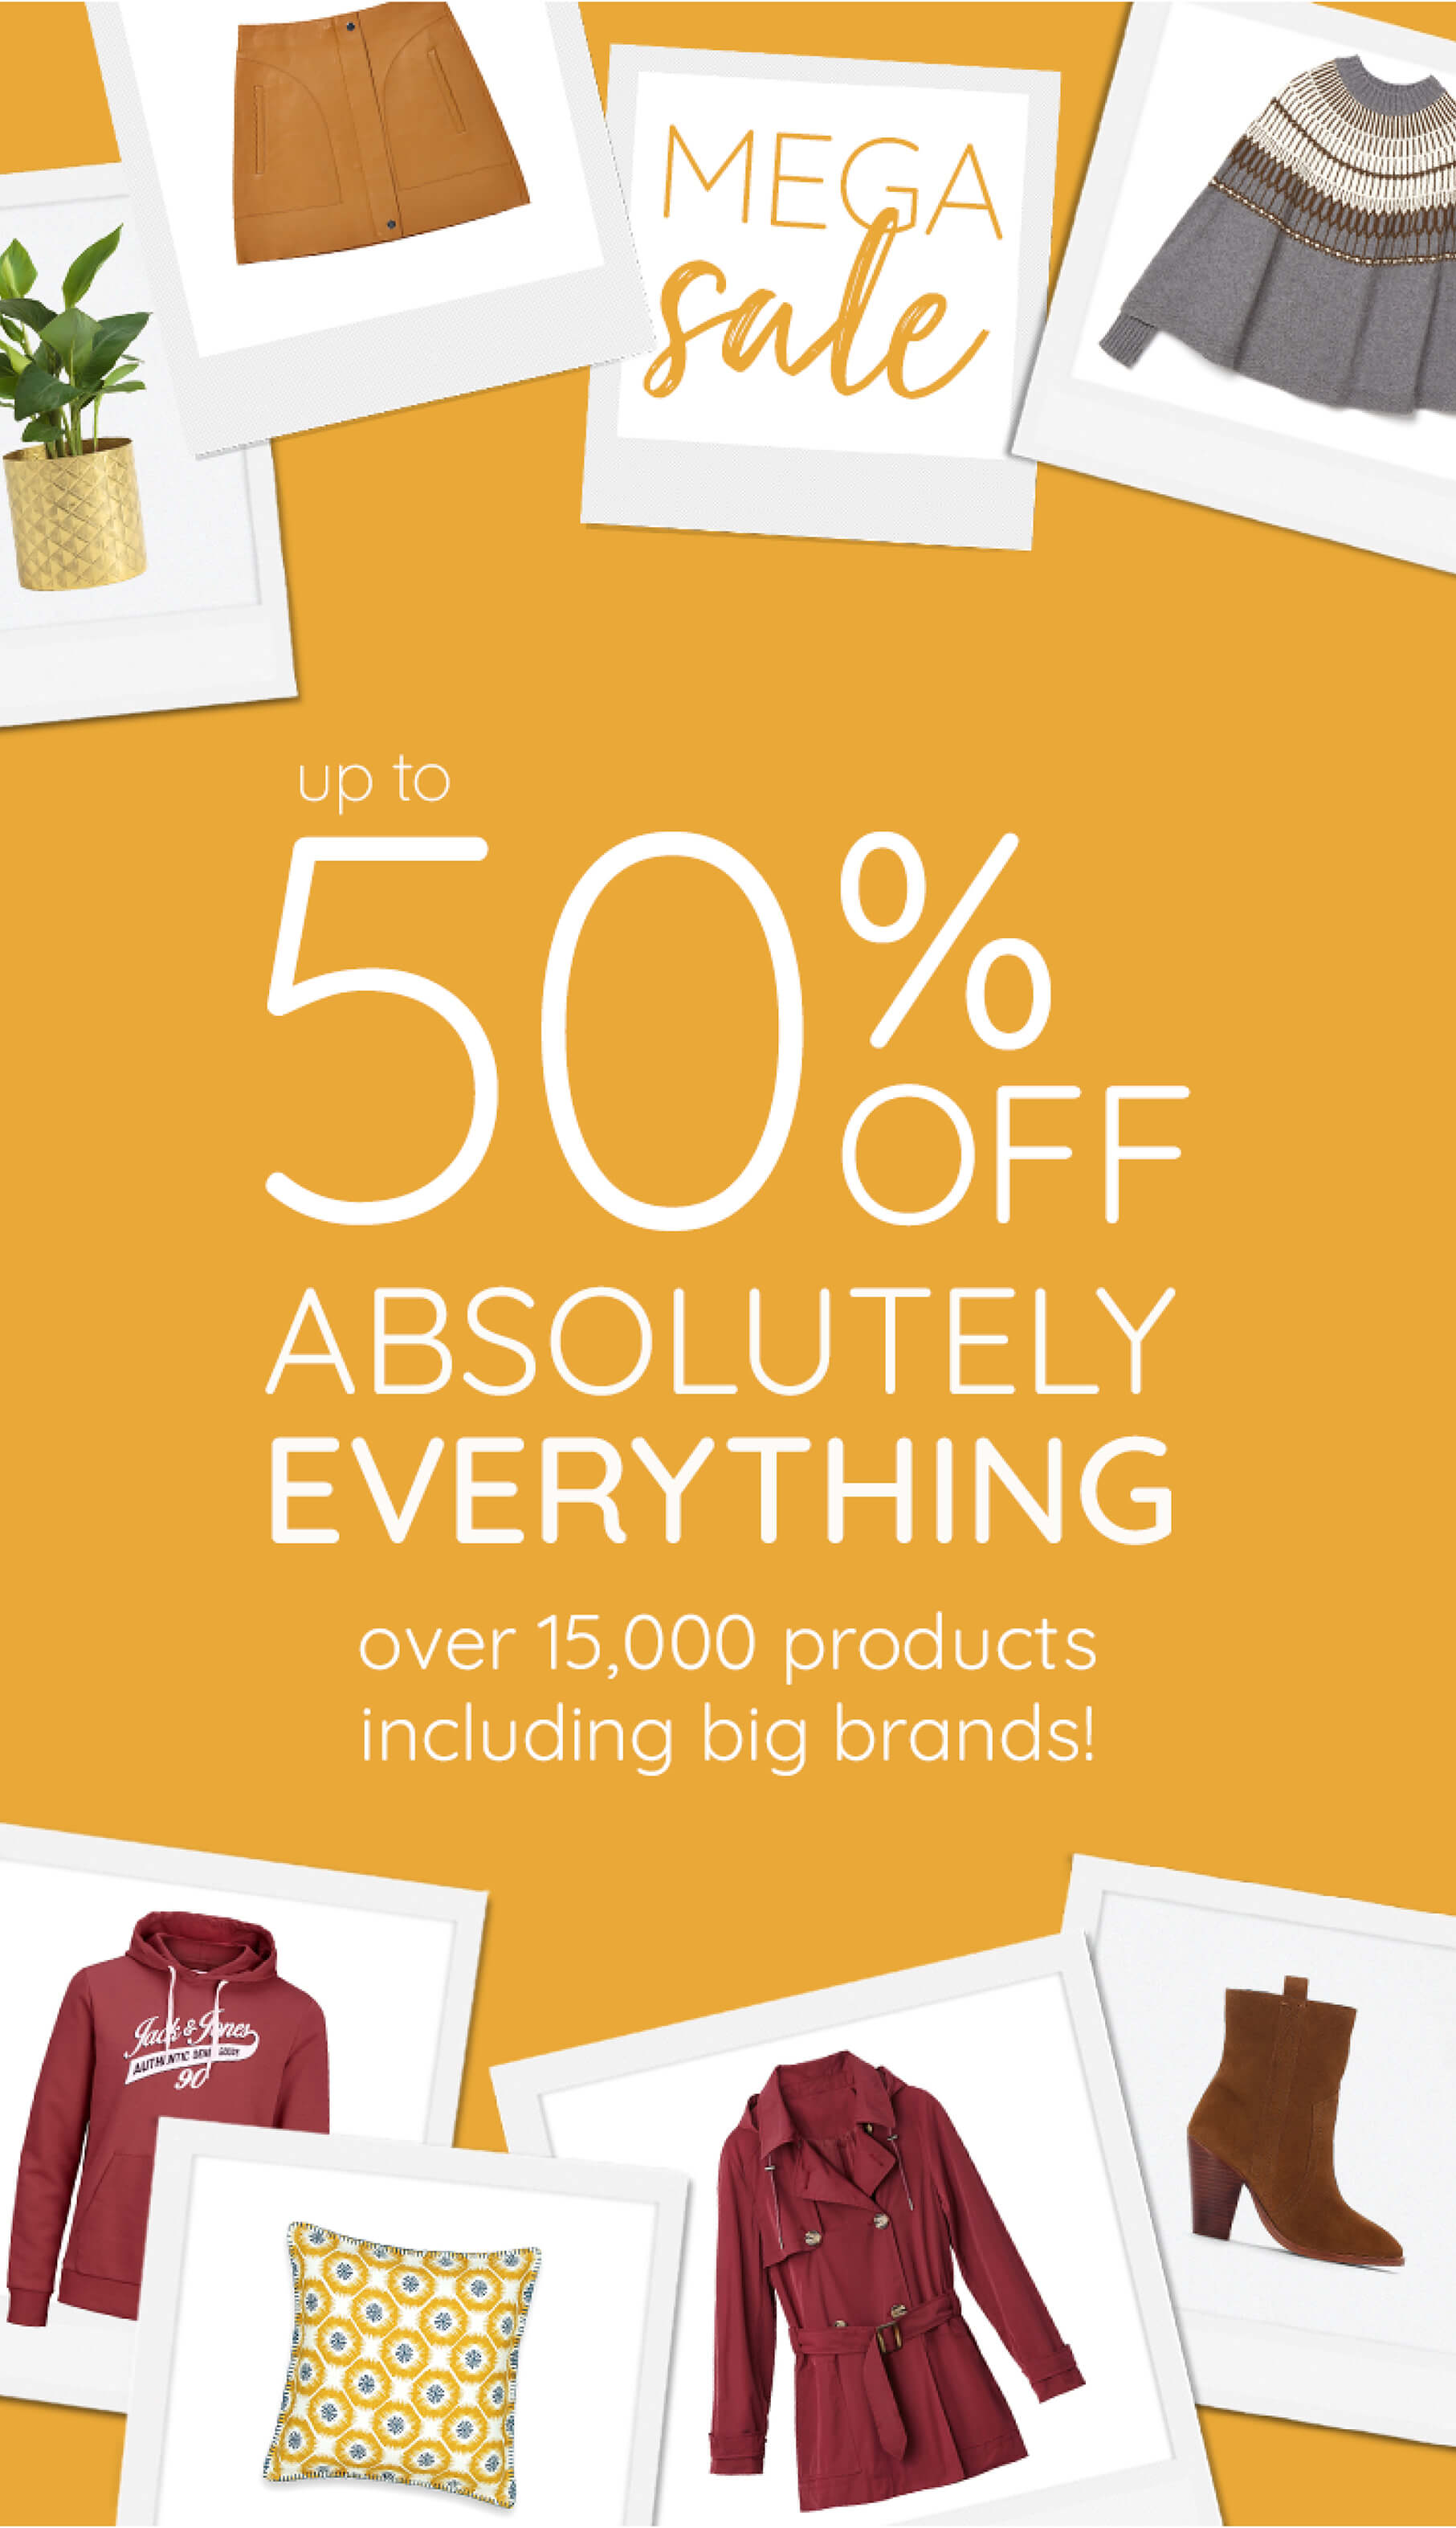 Mega Sale - Up to 50% off Everything